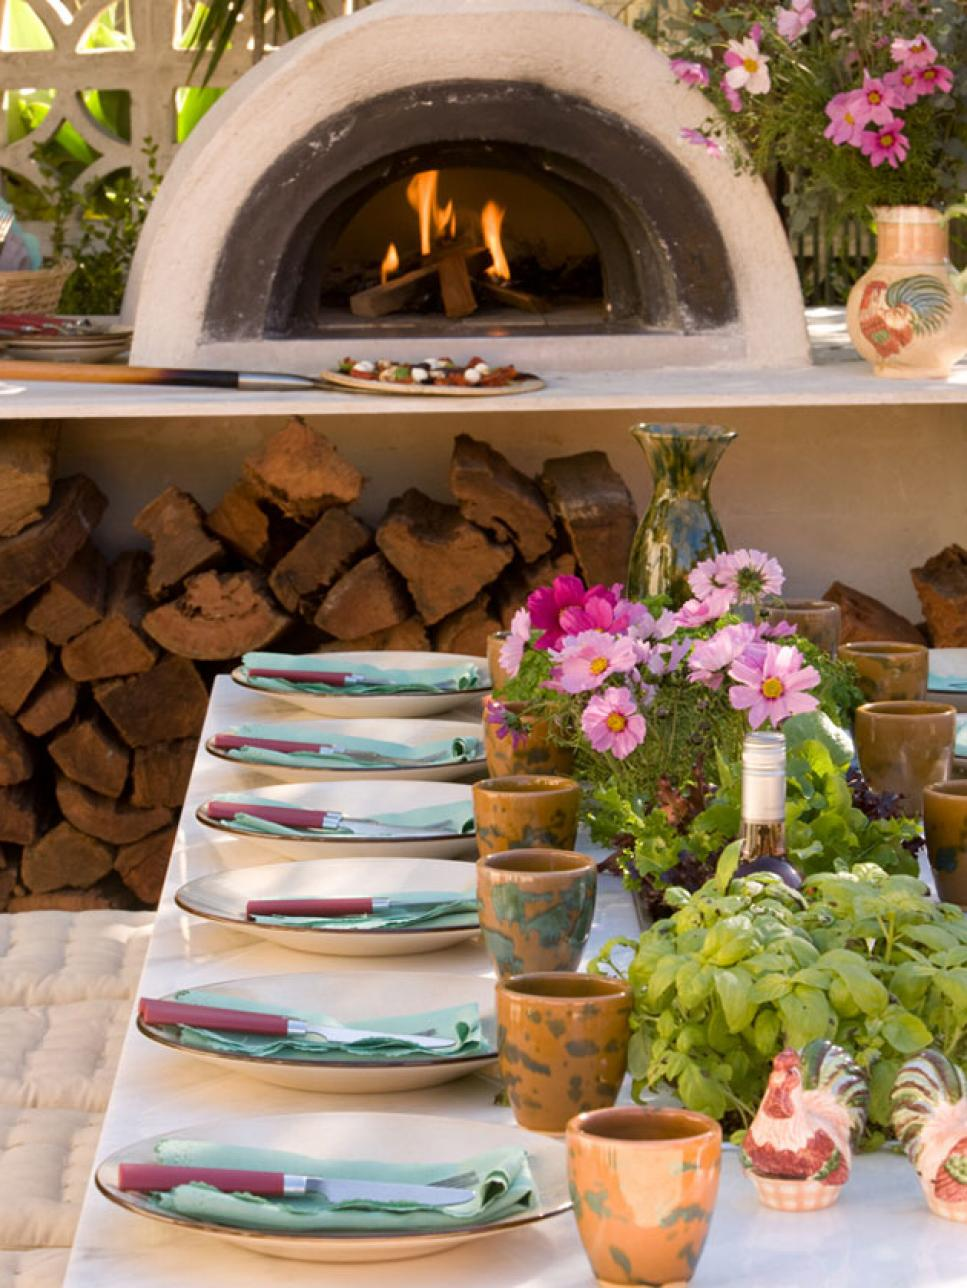 Pizza Oven Outdoor Kitchen Outdoor Kitchens Hgtv